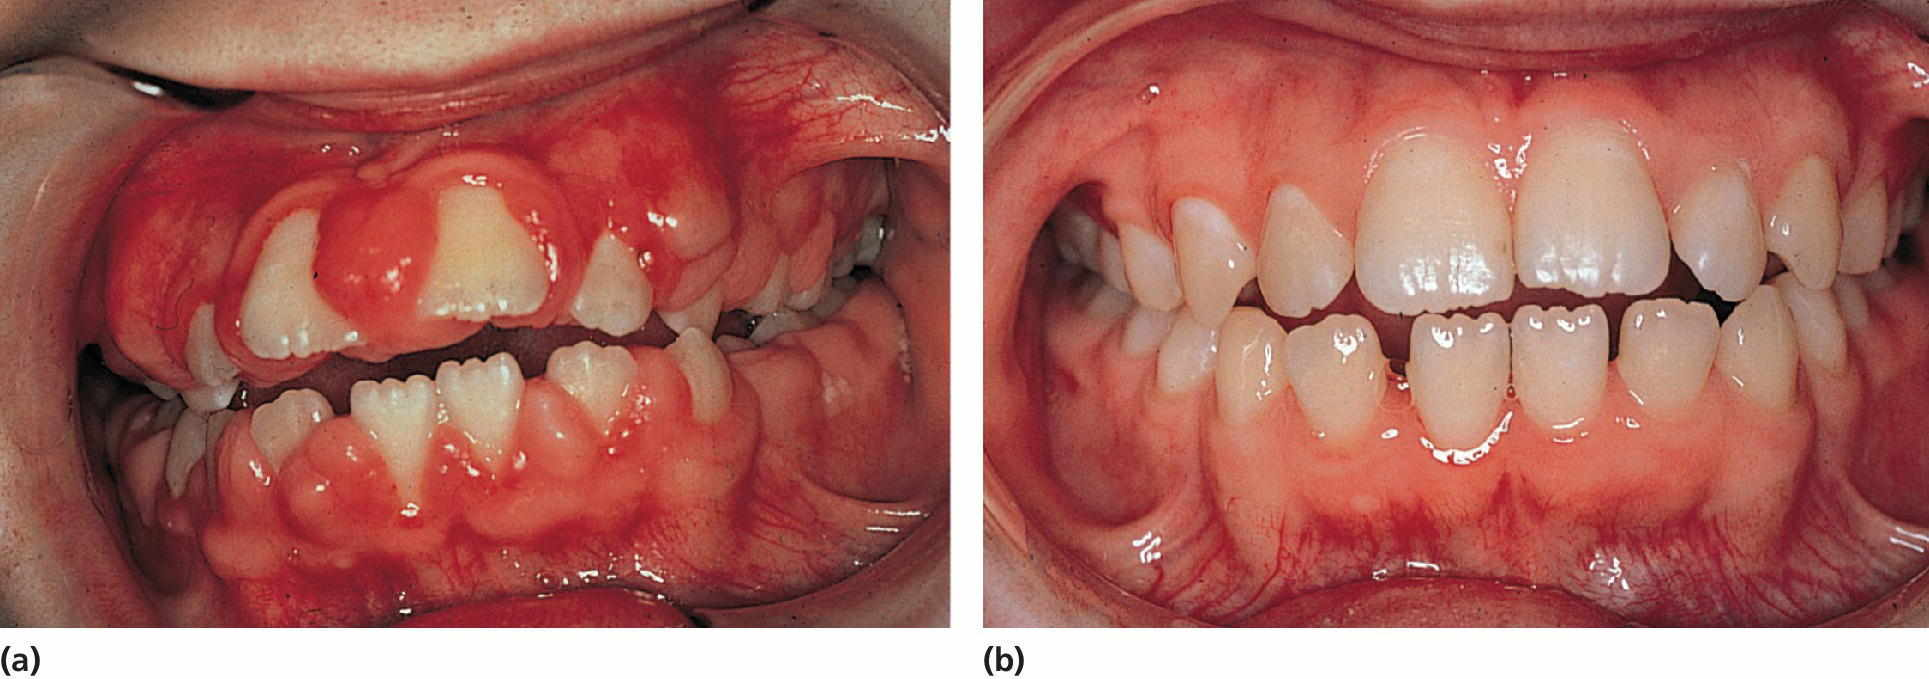 Left: Photo of a 10‐year‐old girl exhibiting severe gingival overgrowth. Right: Photo of a girl at 13 years, exhibiting a normal gingival 1 year after gingivectomy and discontinuation of phenytoin medication.